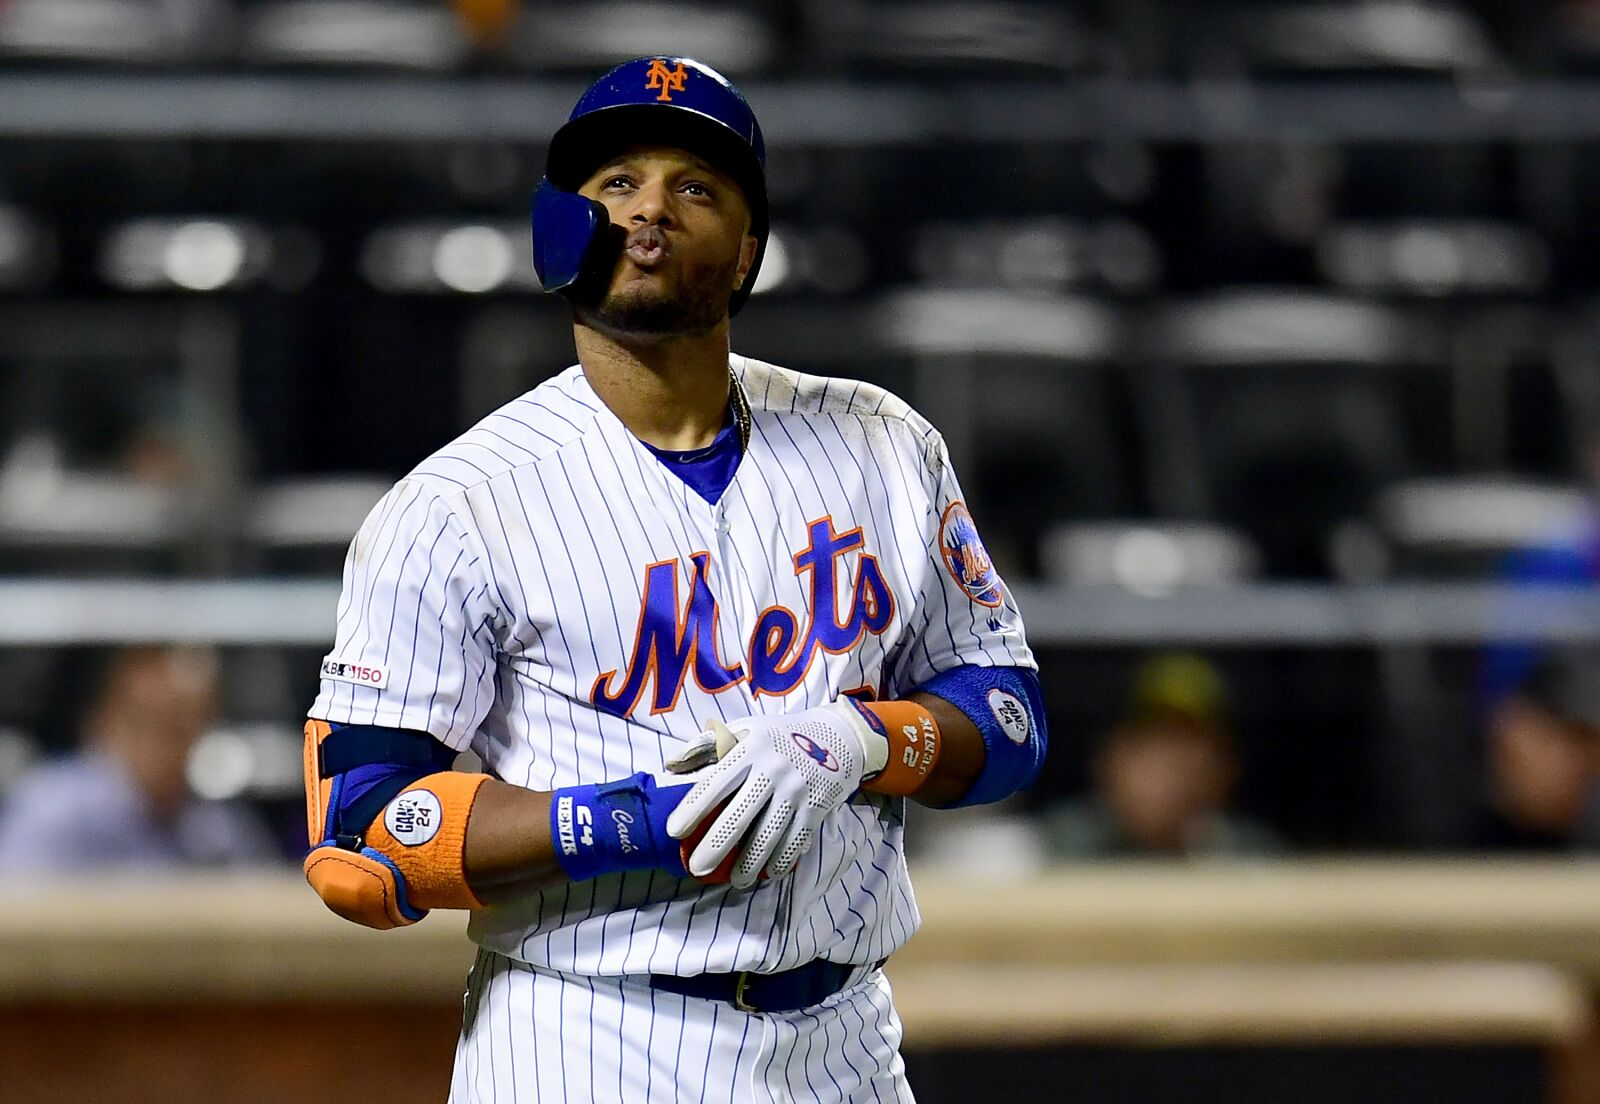 New York Mets: Revisiting the Robinson Cano, Edwin Diaz trade